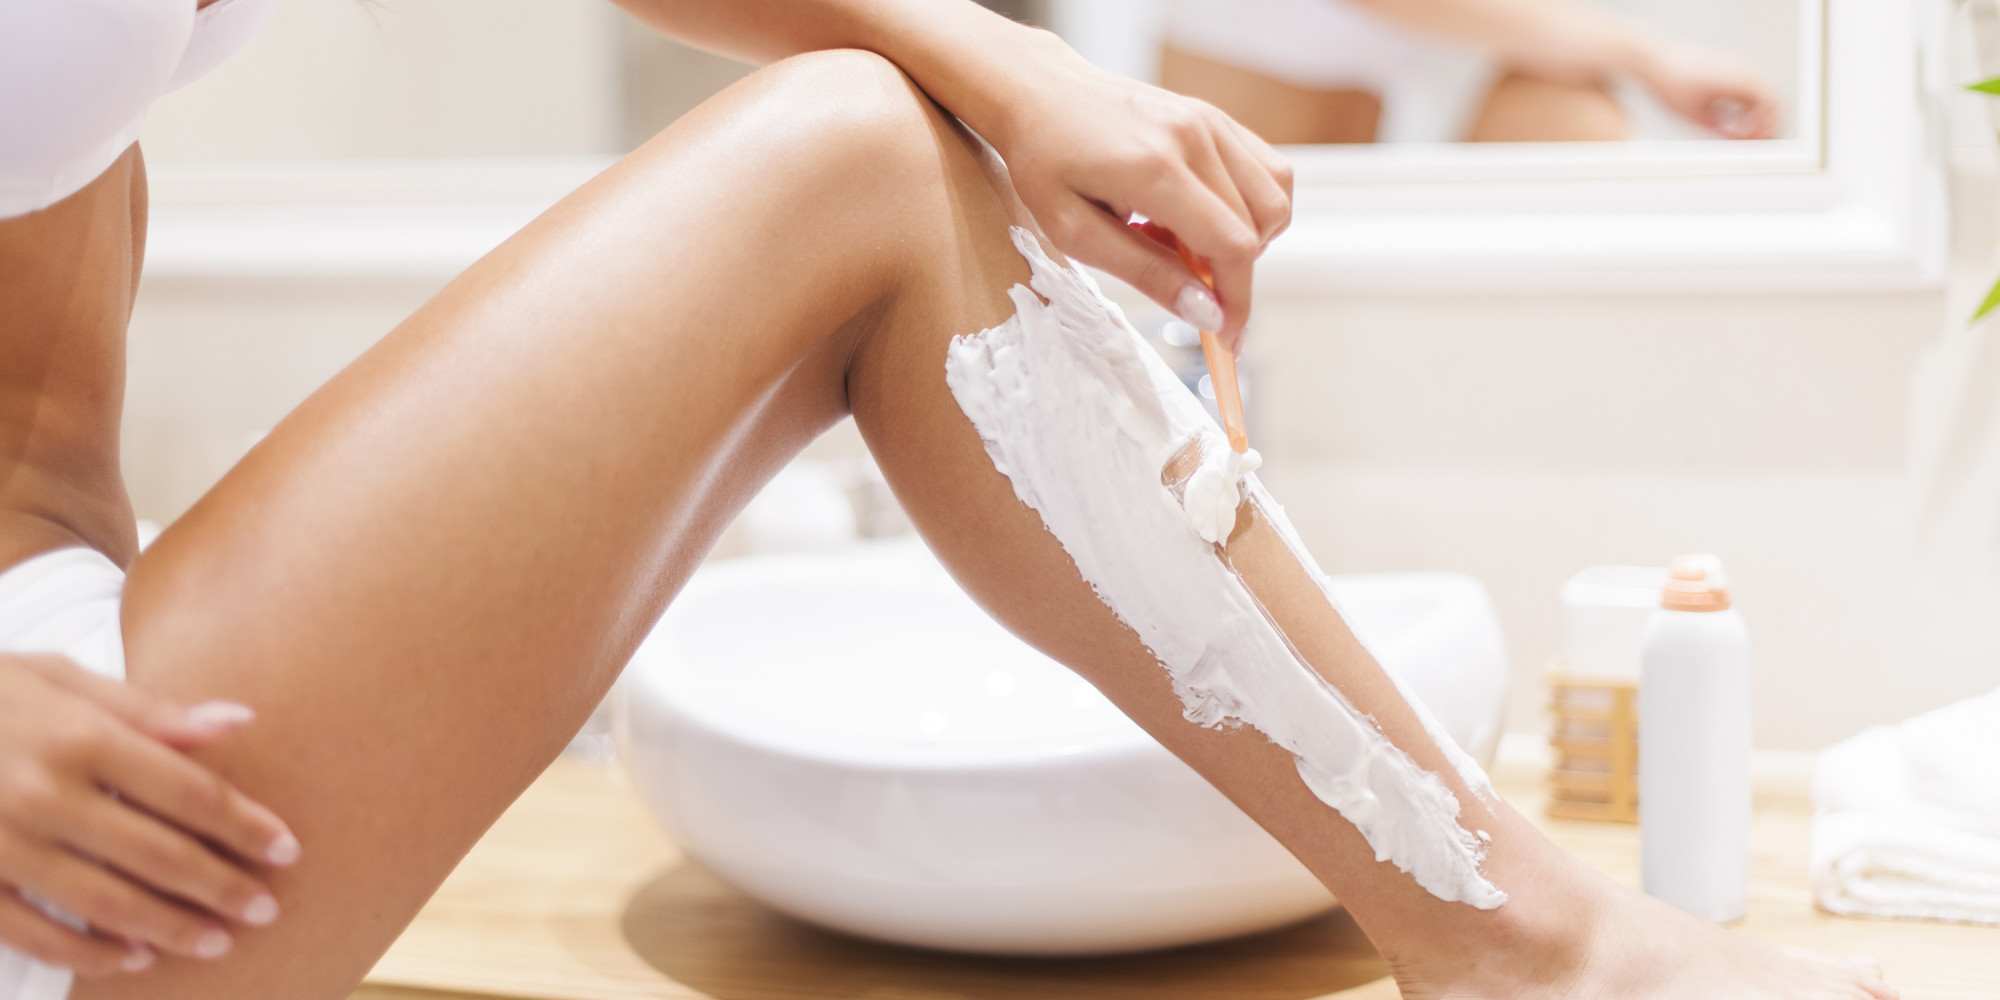 Shaving Your Legs How To